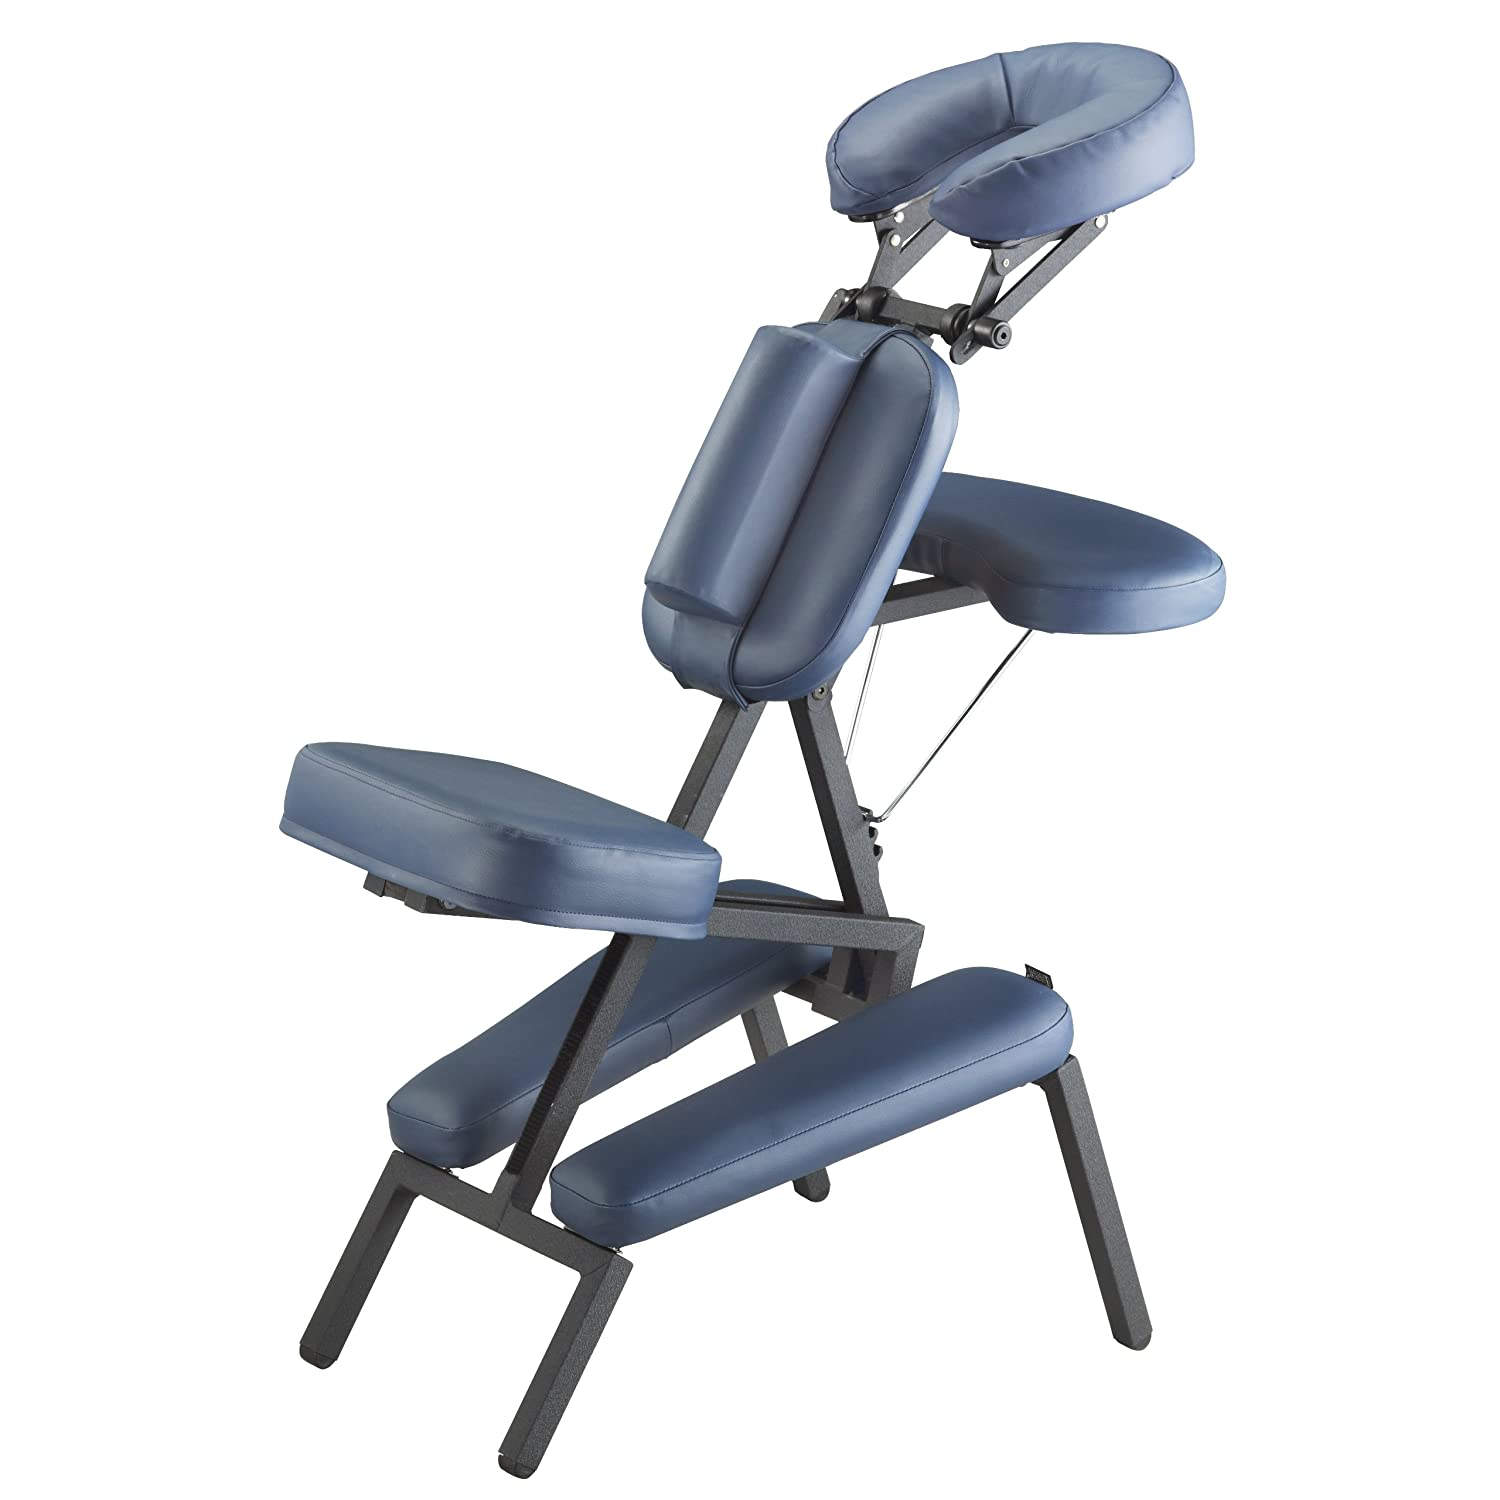 Luxury Portable Massage Chairs Lovely